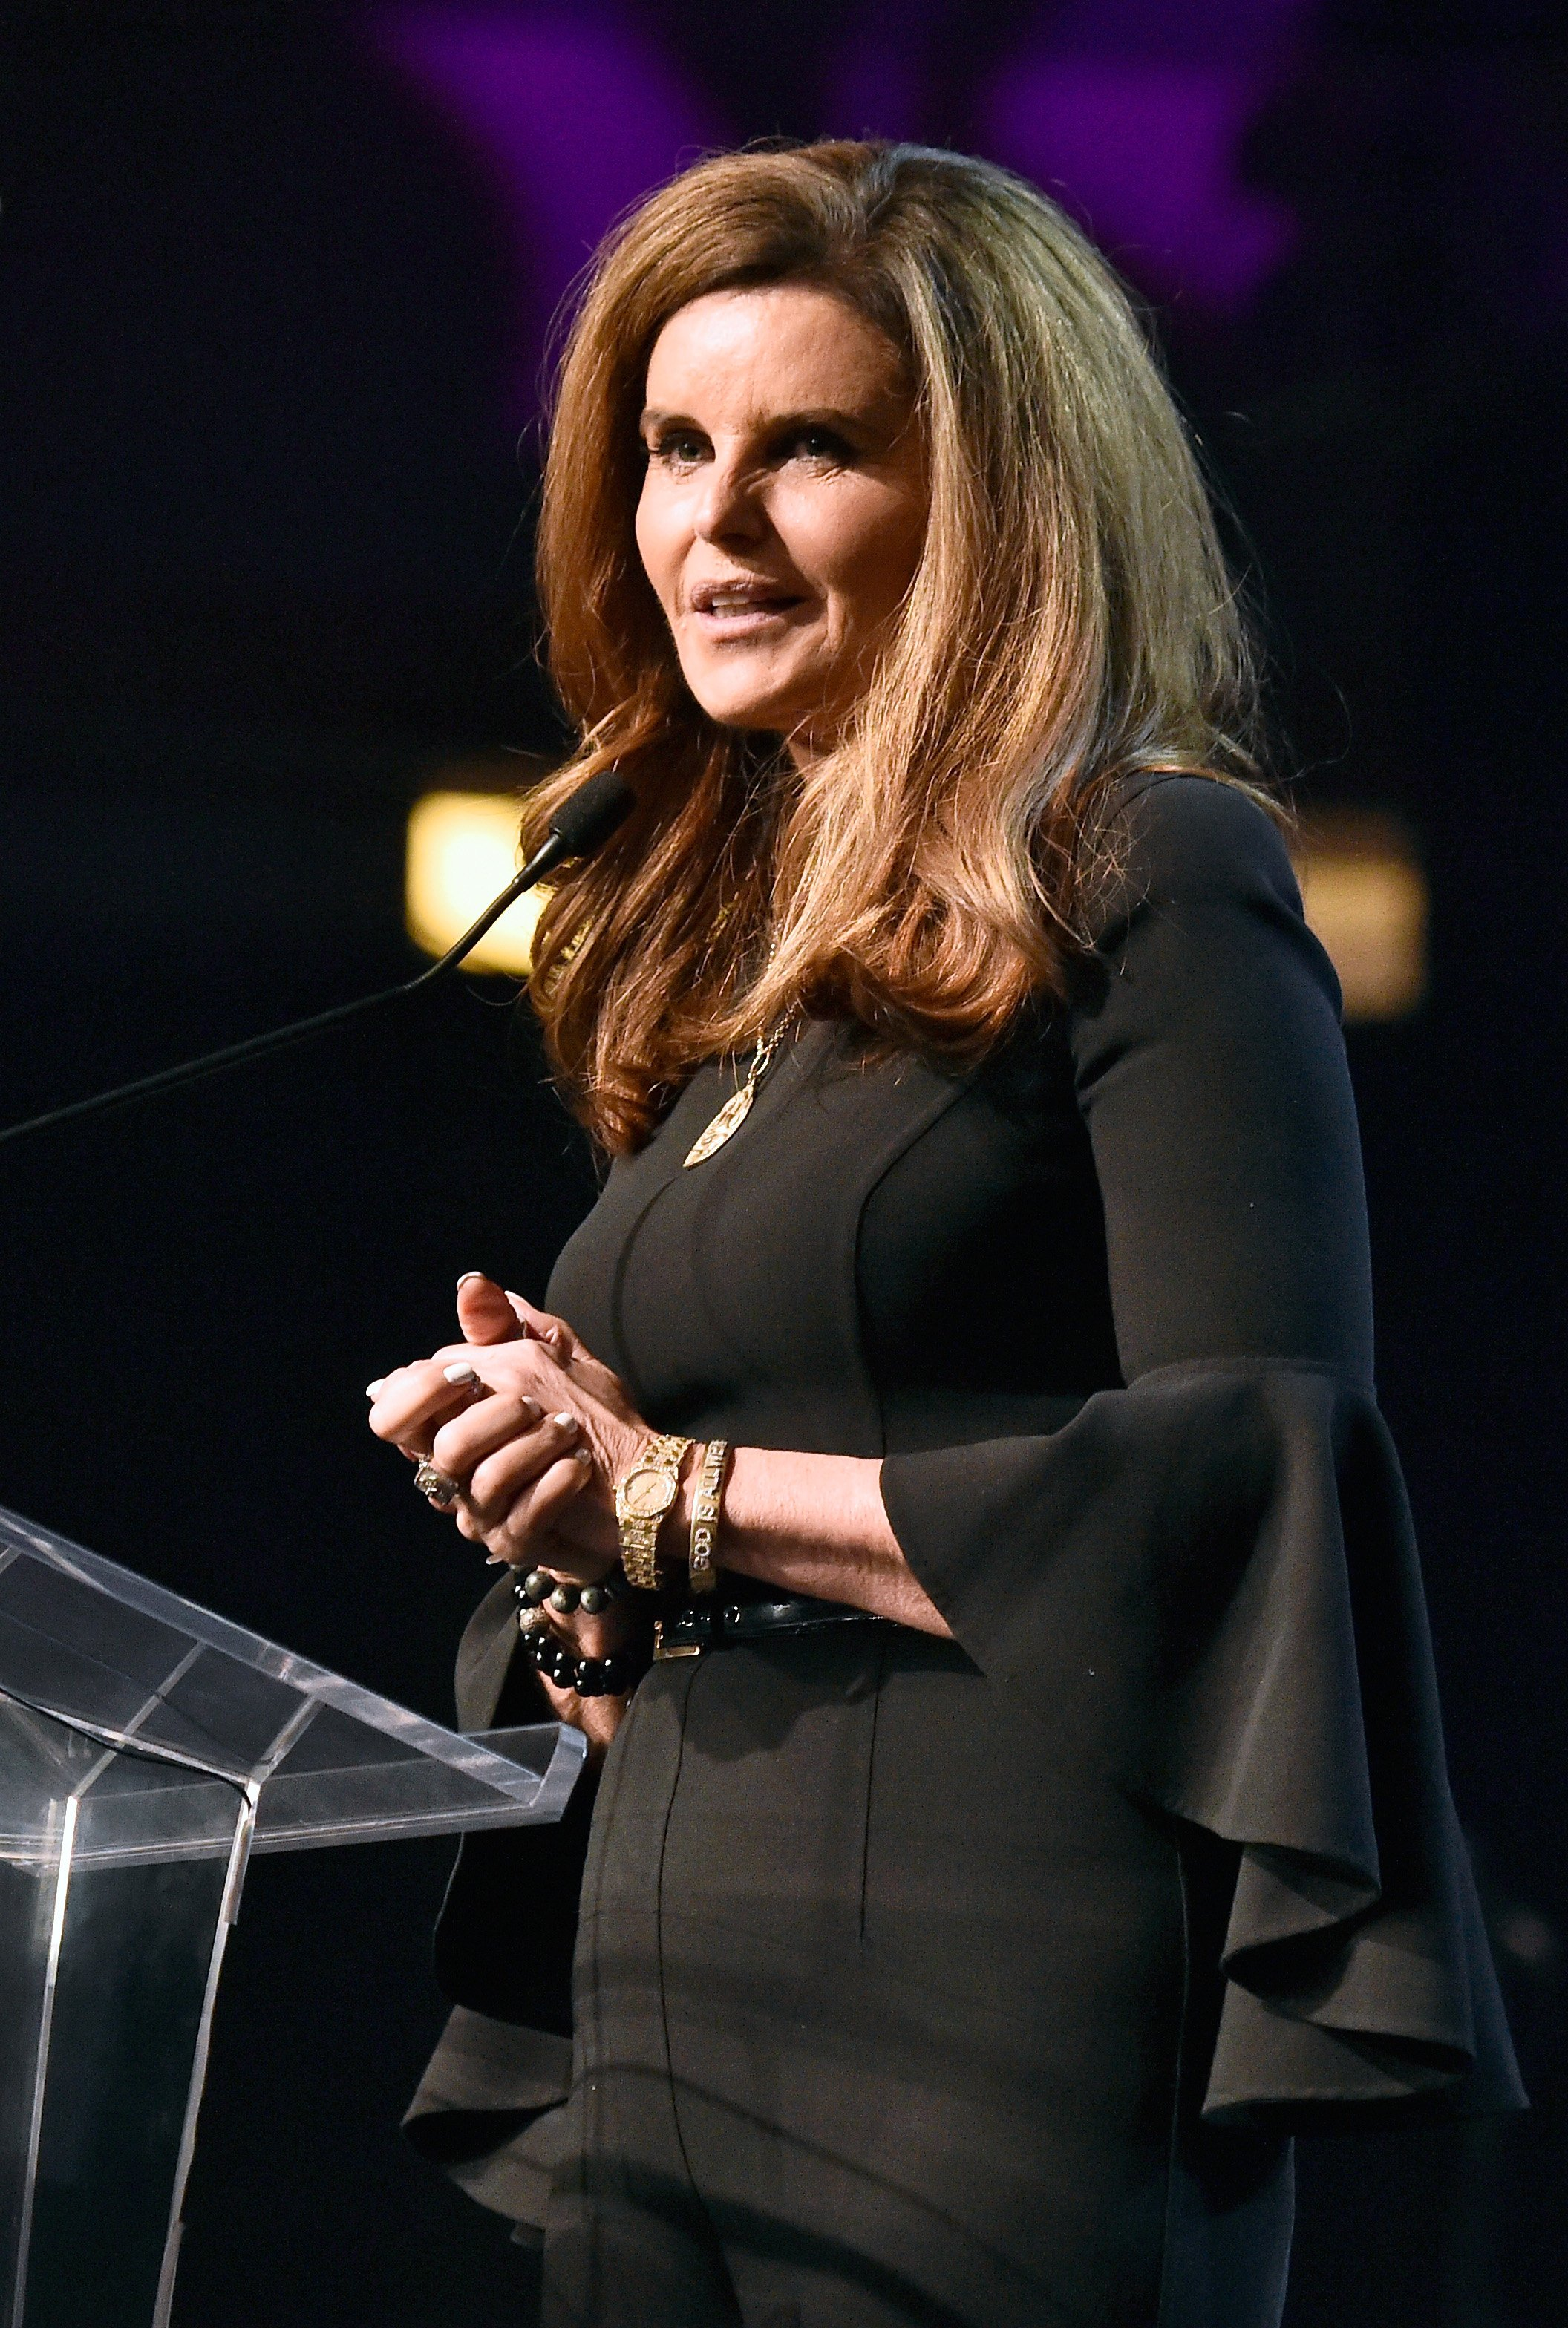 Image Credits: Getty Images / Frazer Harrison | Honoree Maria Shriver speaks onstage at Celebrity Fight Night XXIV on March 10, 2018 in Phoenix, Arizona.